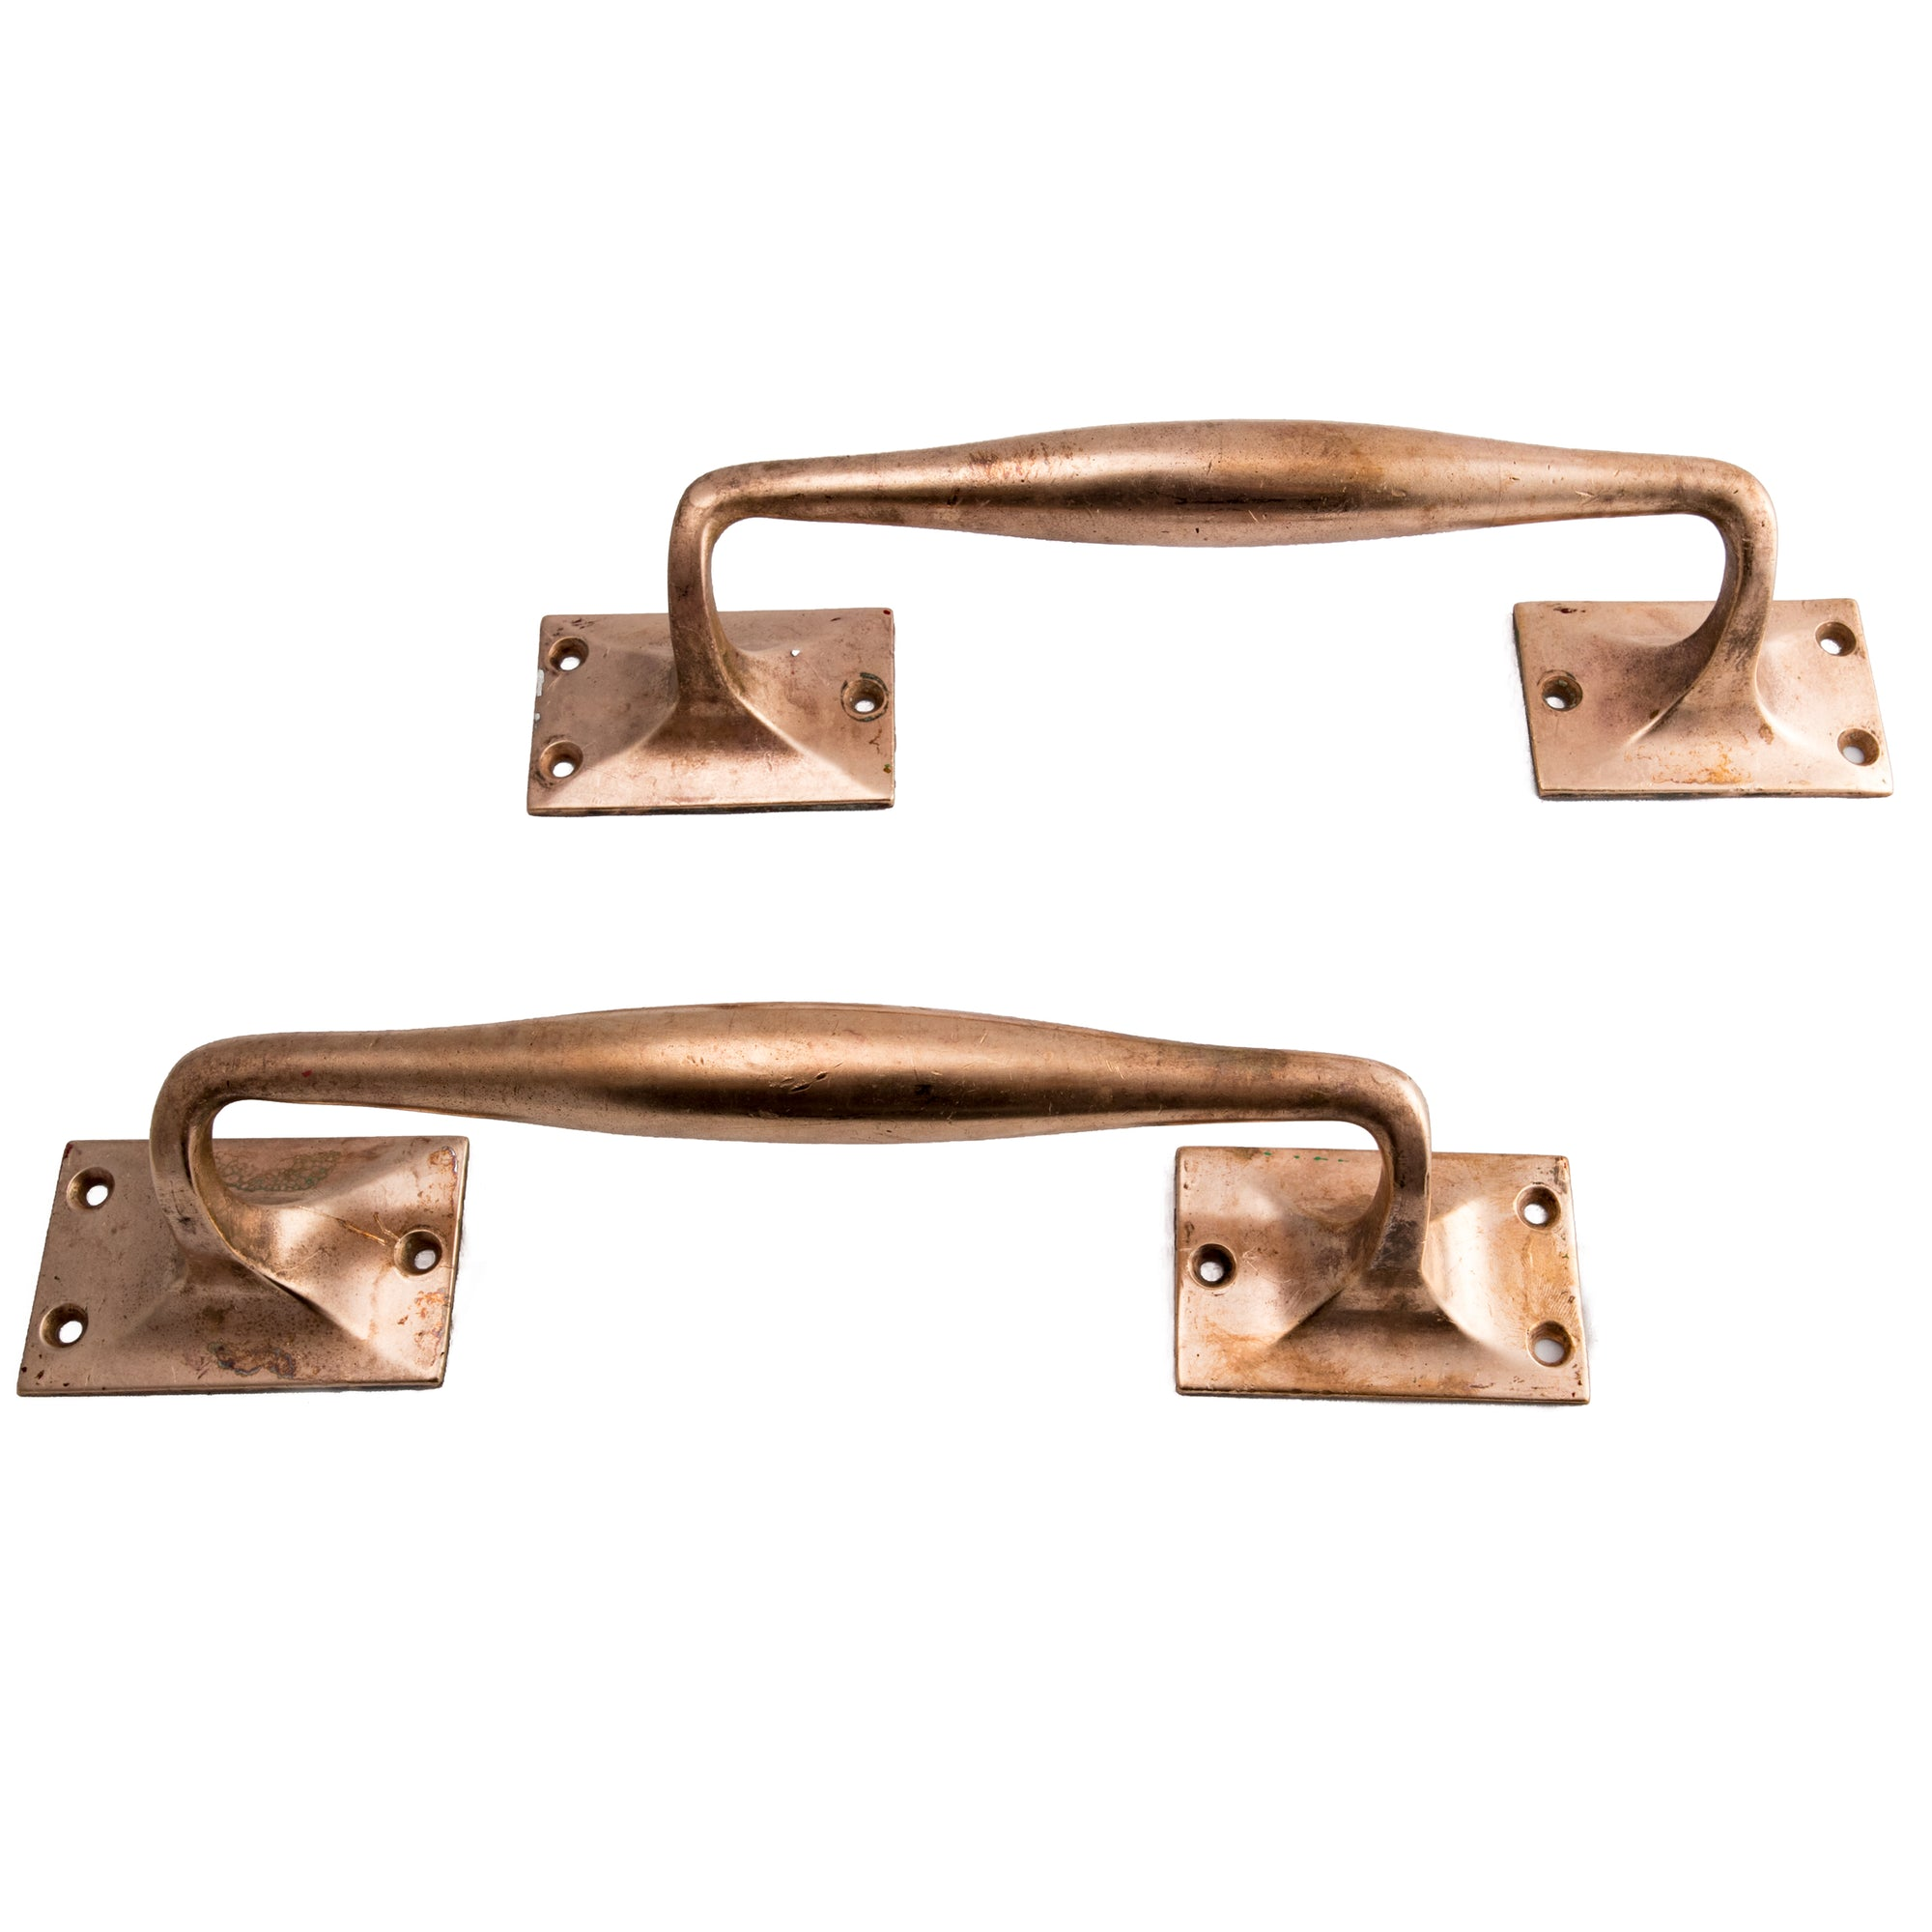 Reclaimed Art Deco Rose Brass Door Pull Handles - architectural-forum